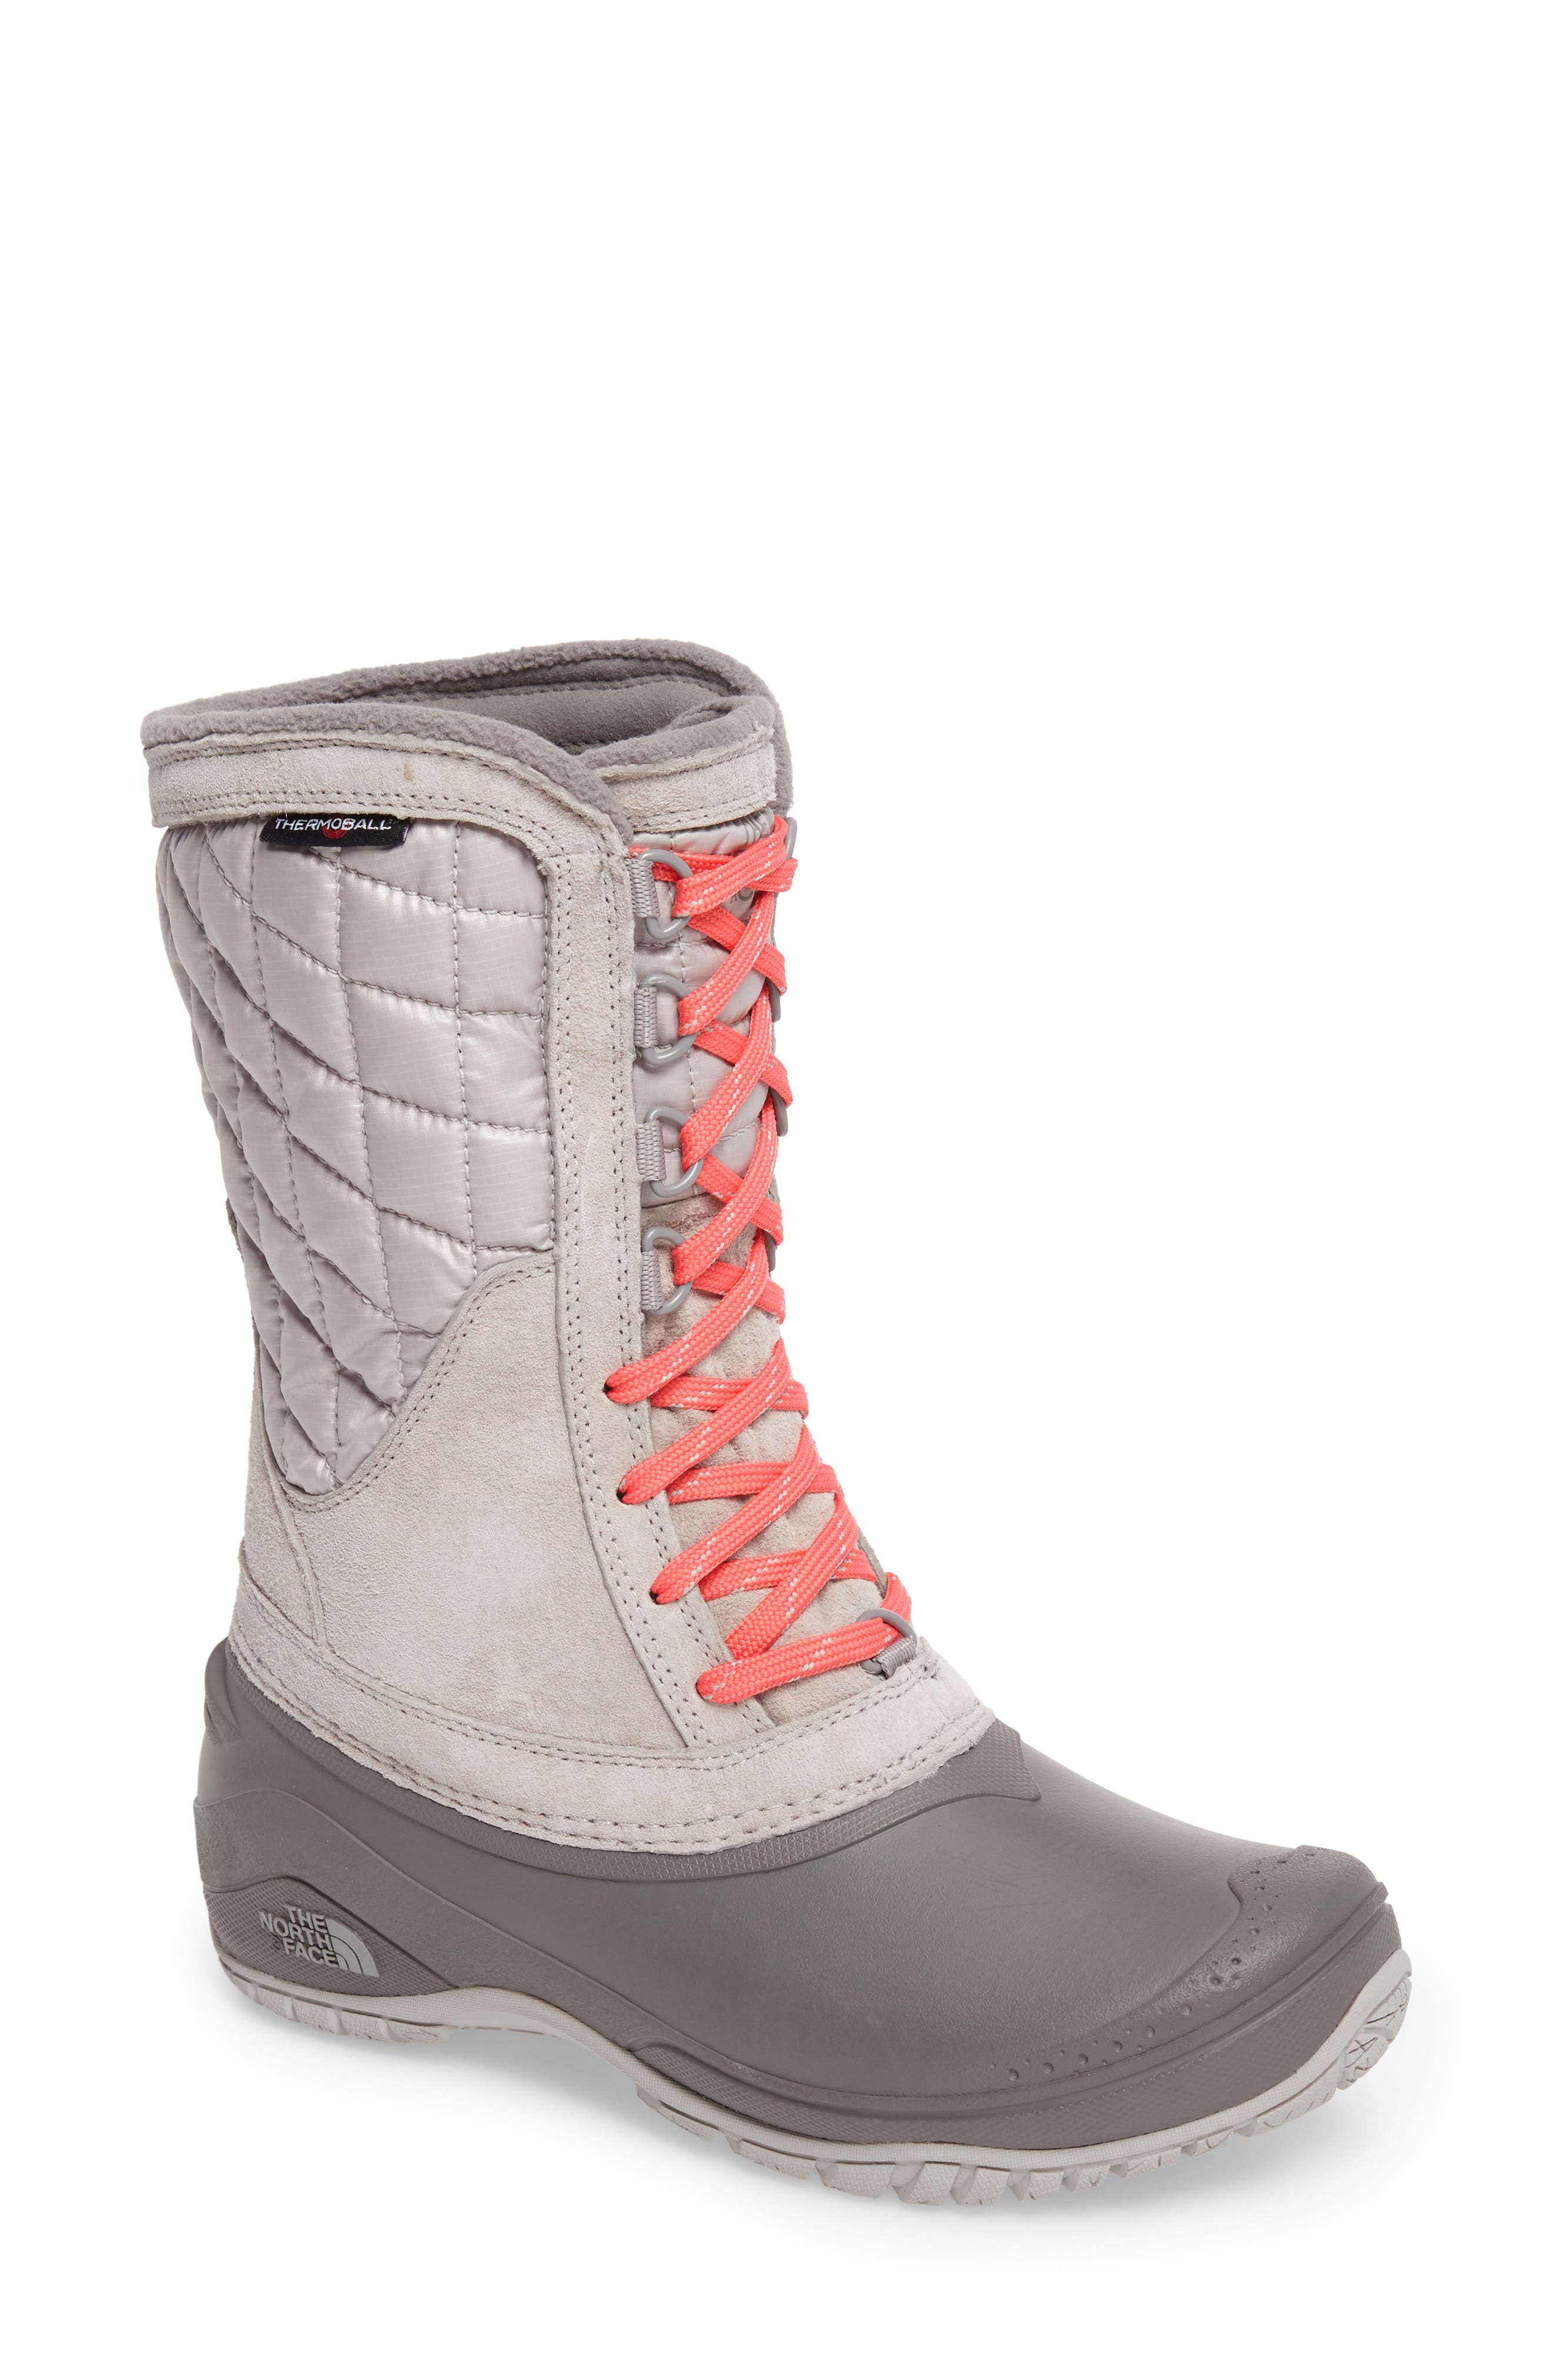 ThermoBall<sup>™</sup> Utility Waterproof Boot,                             Main thumbnail 1, color,                             Dove Grey/ Calypso Coral